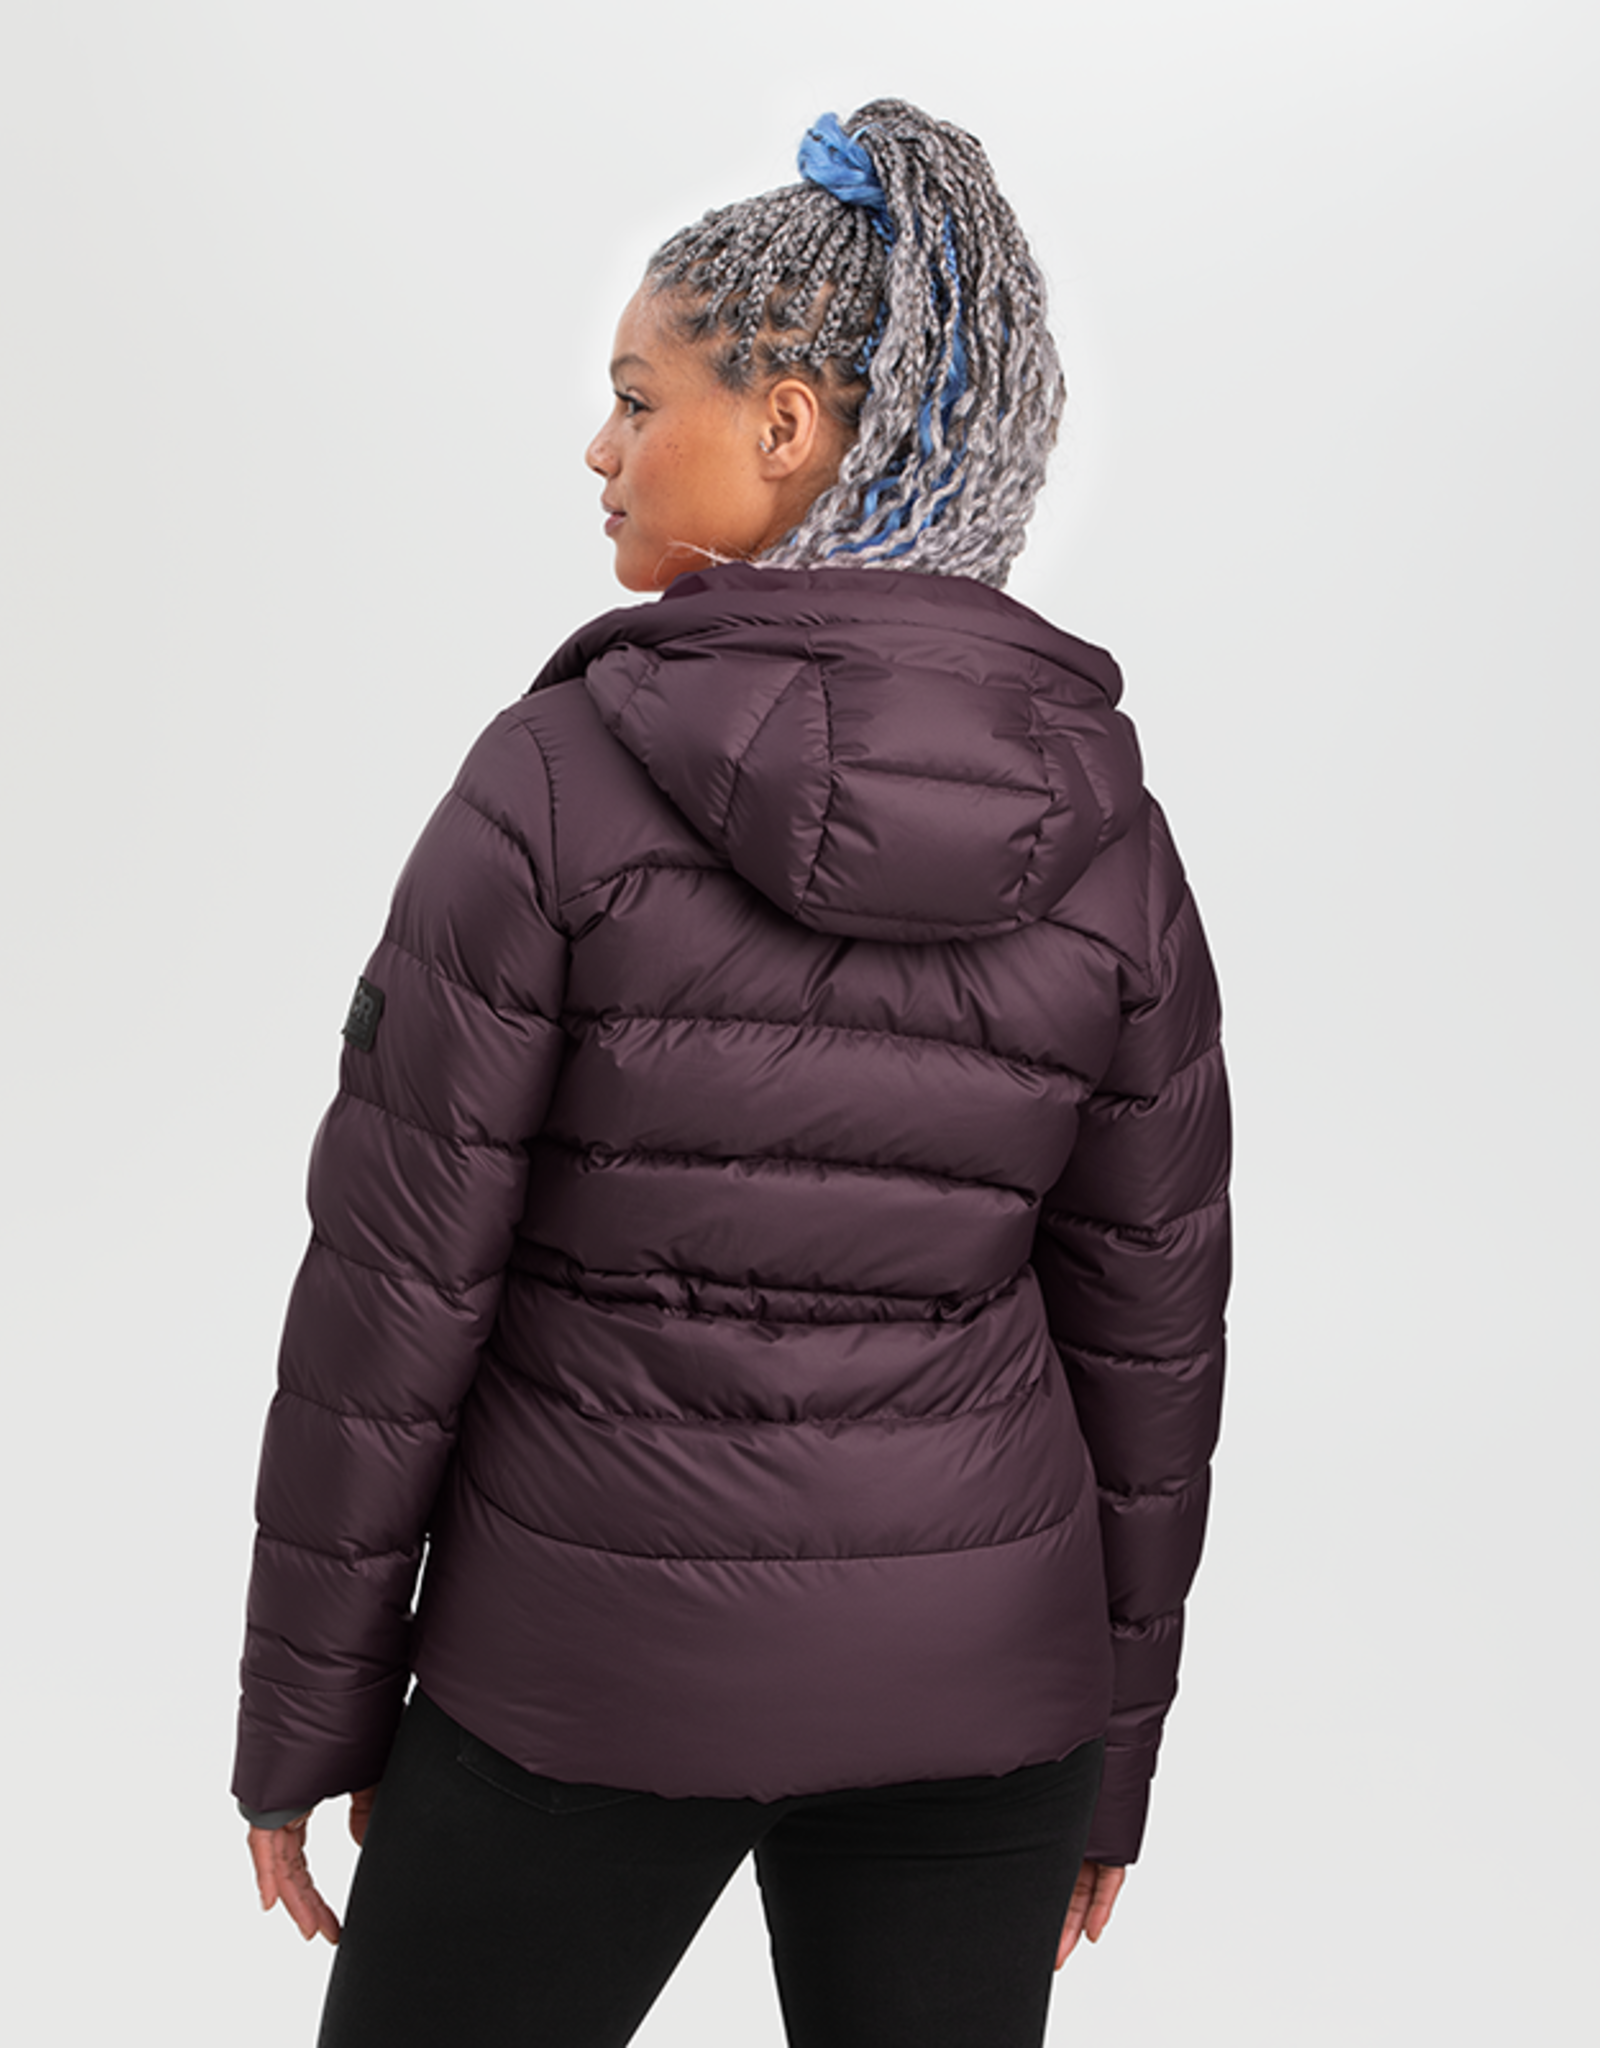 Outdoor Research Outdoor Research Coldfront Hoodie Wmn's